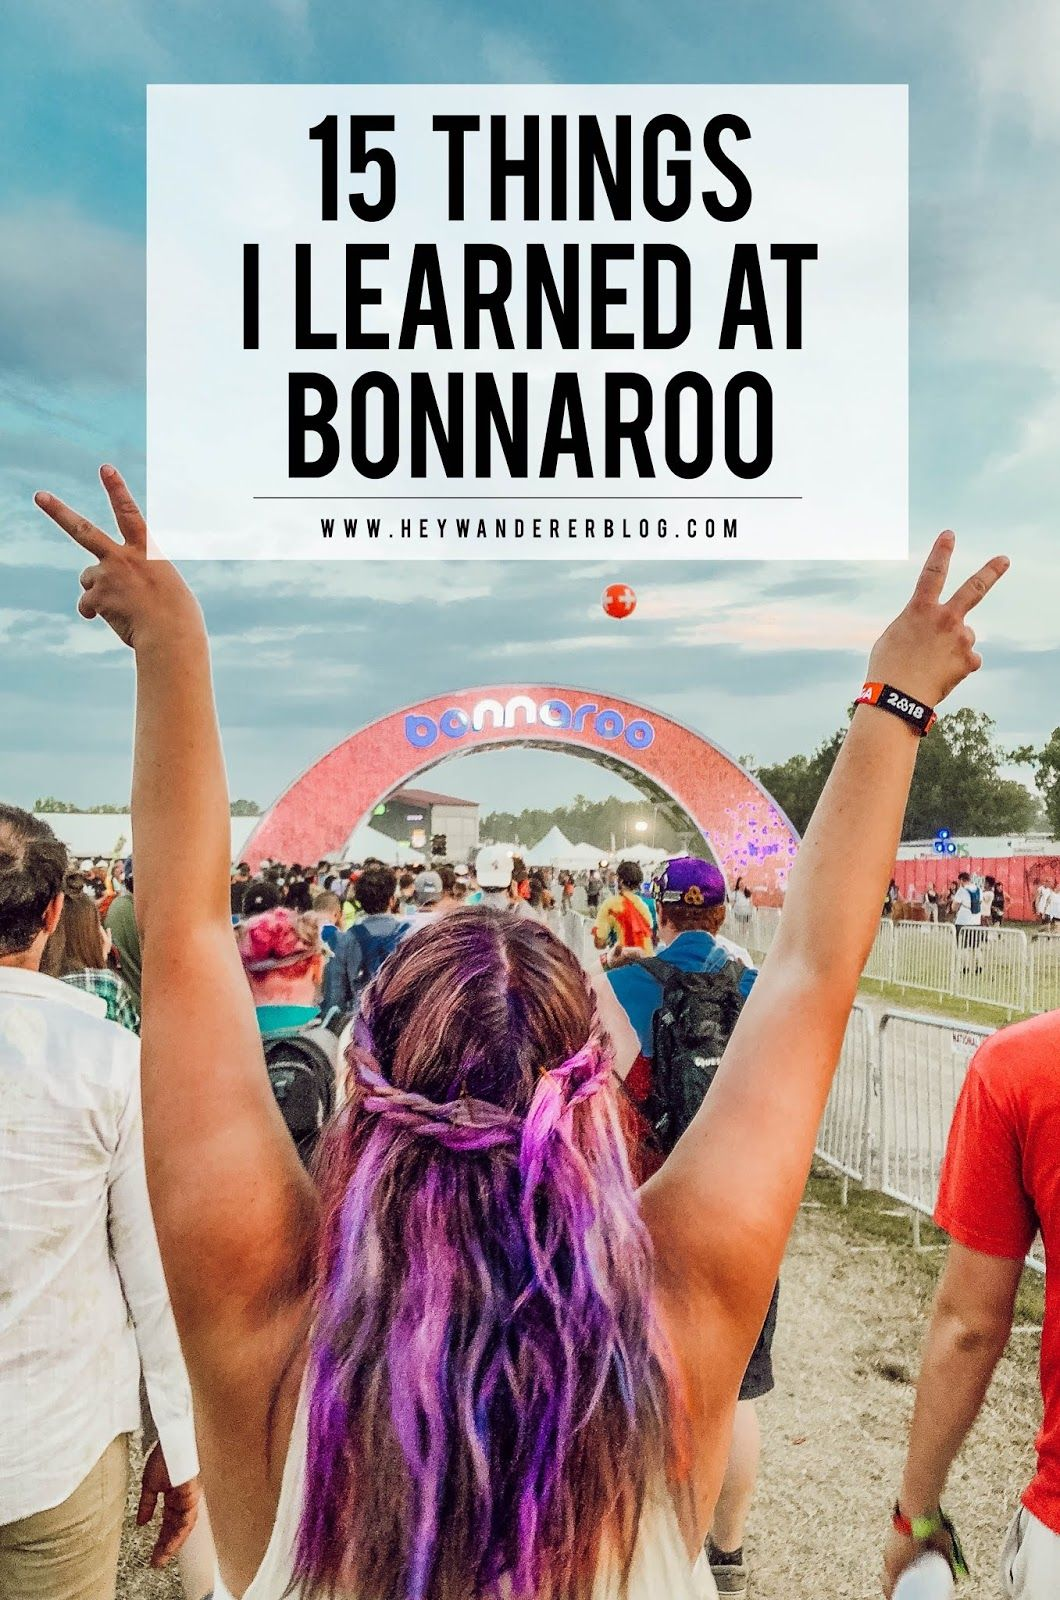 15 Things You Should Know About Bonnaroo